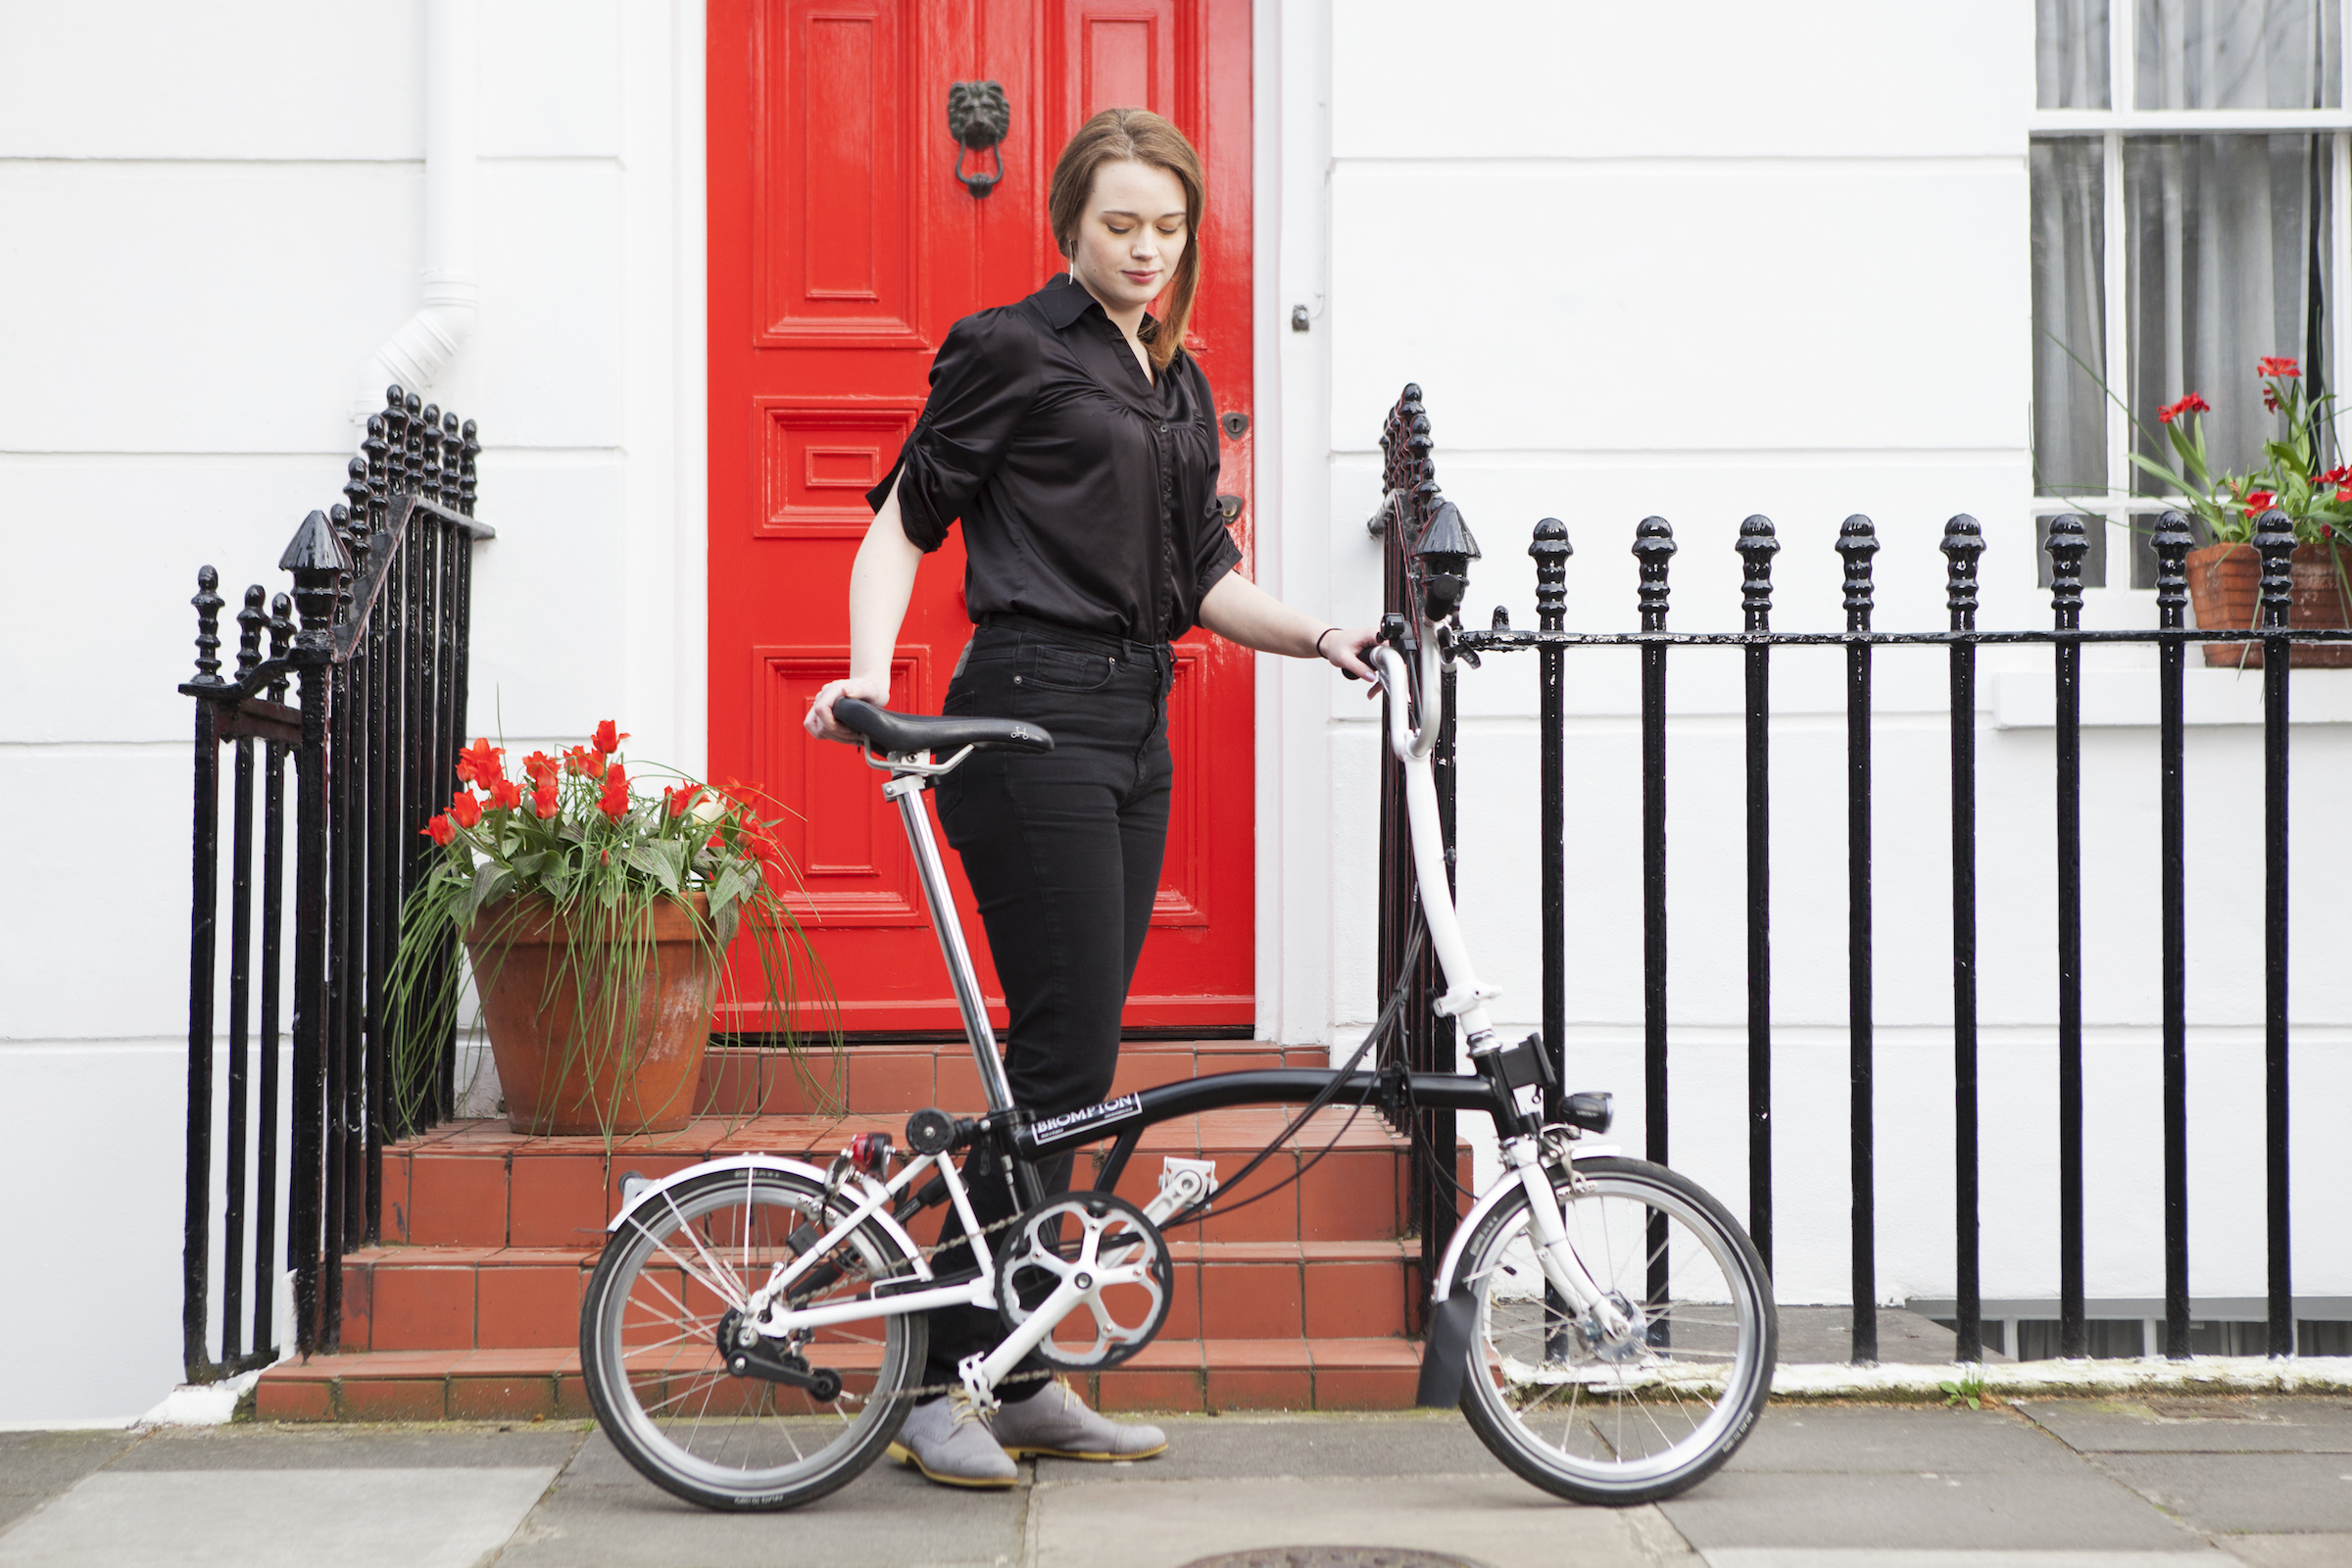 Brompton Bikes News The Saddle Height Insert